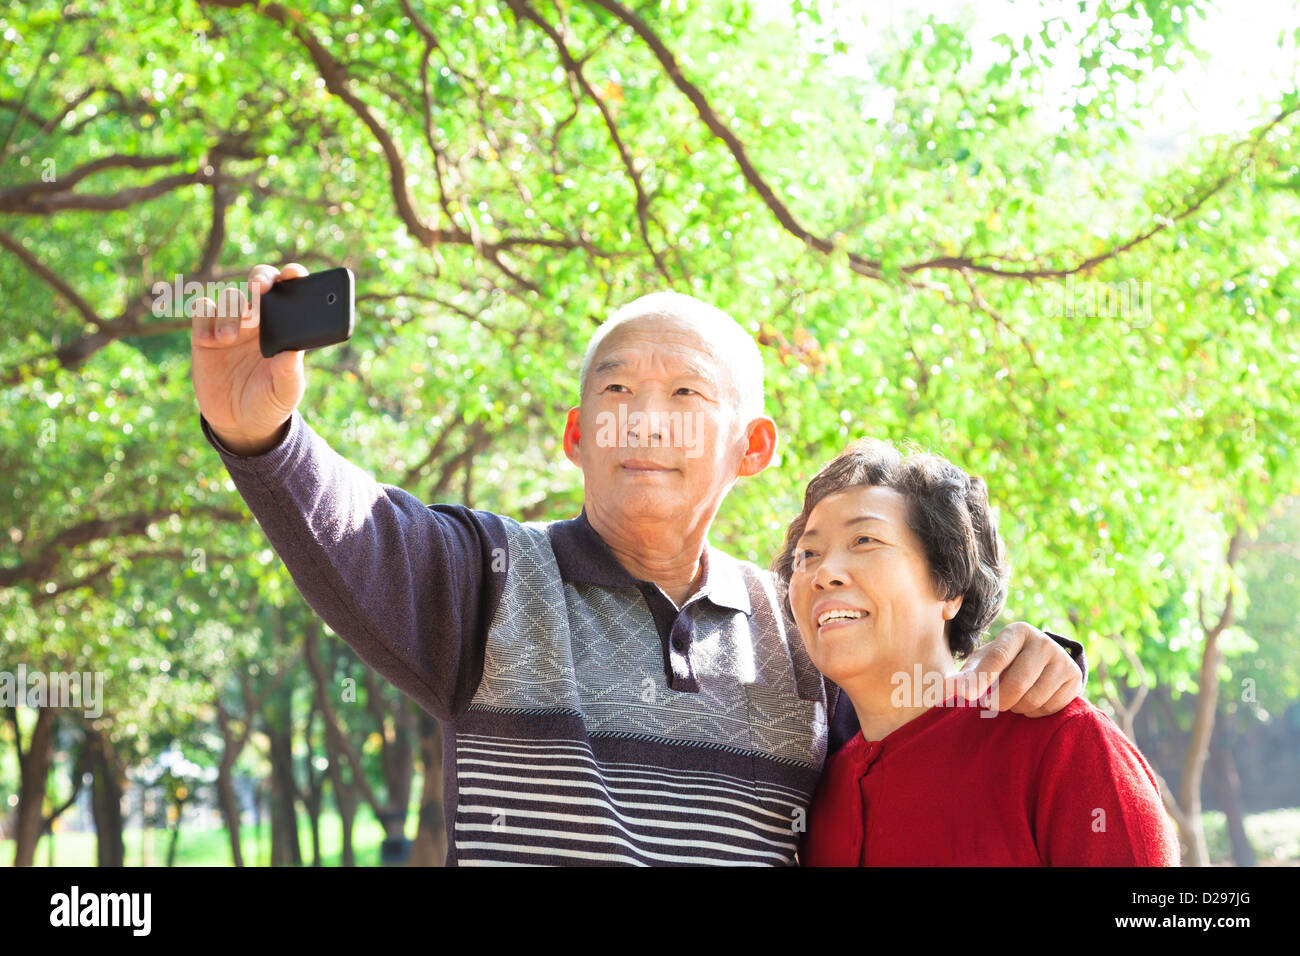 Senior couple taking picture of themselves outdoor - Stock Image